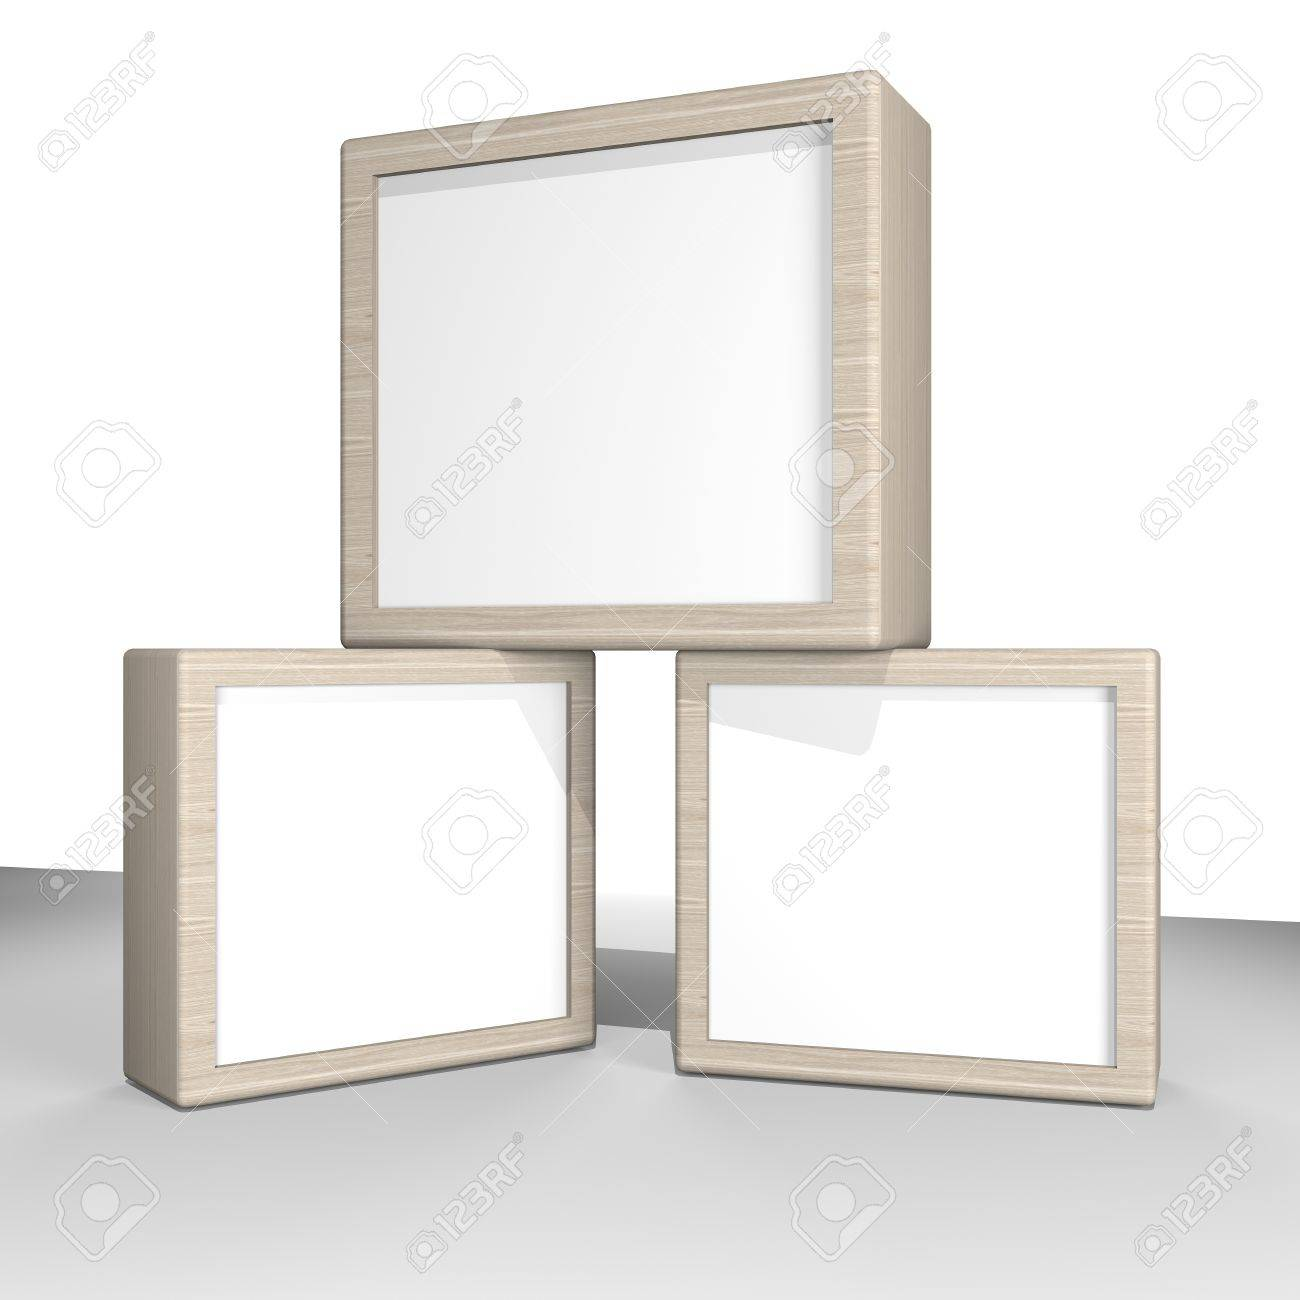 Three Blank Box Display New Design Wood Frame Template For